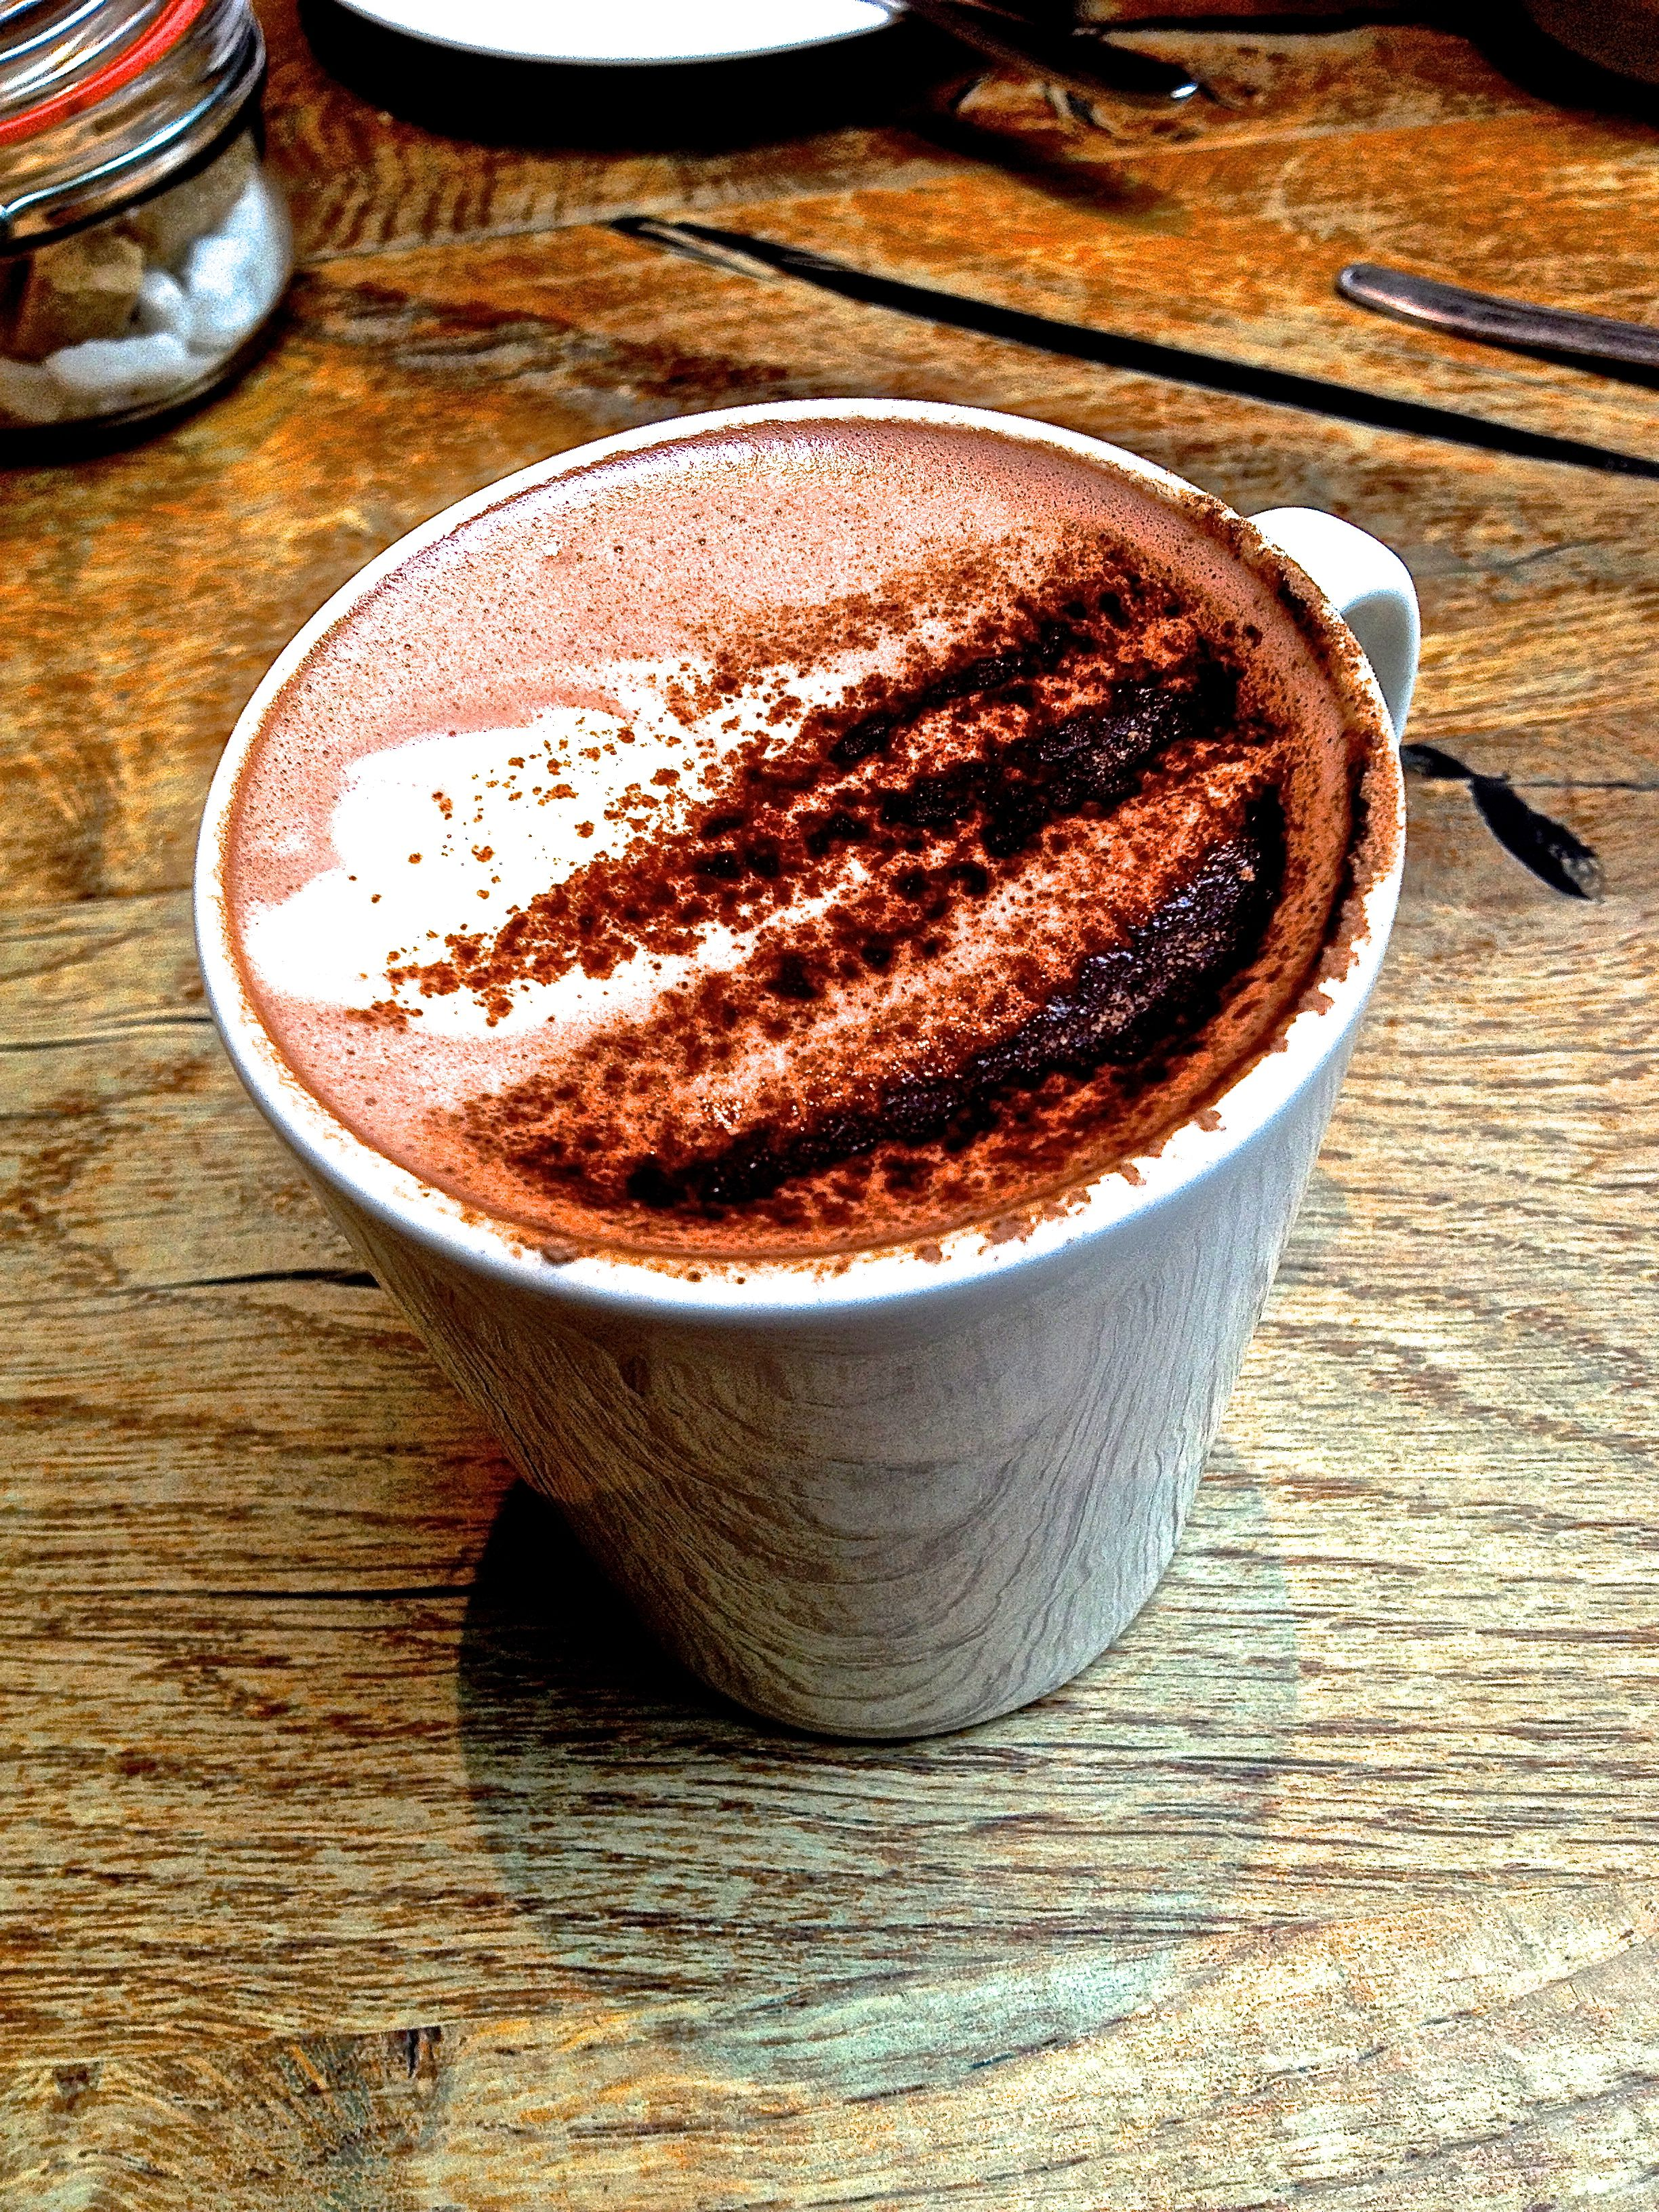 January 25th  After the tour ended, Riley and I were absolutely freezing from the wind and stopped by the cafe for a quick break.  My hot chocolate was amazing :)